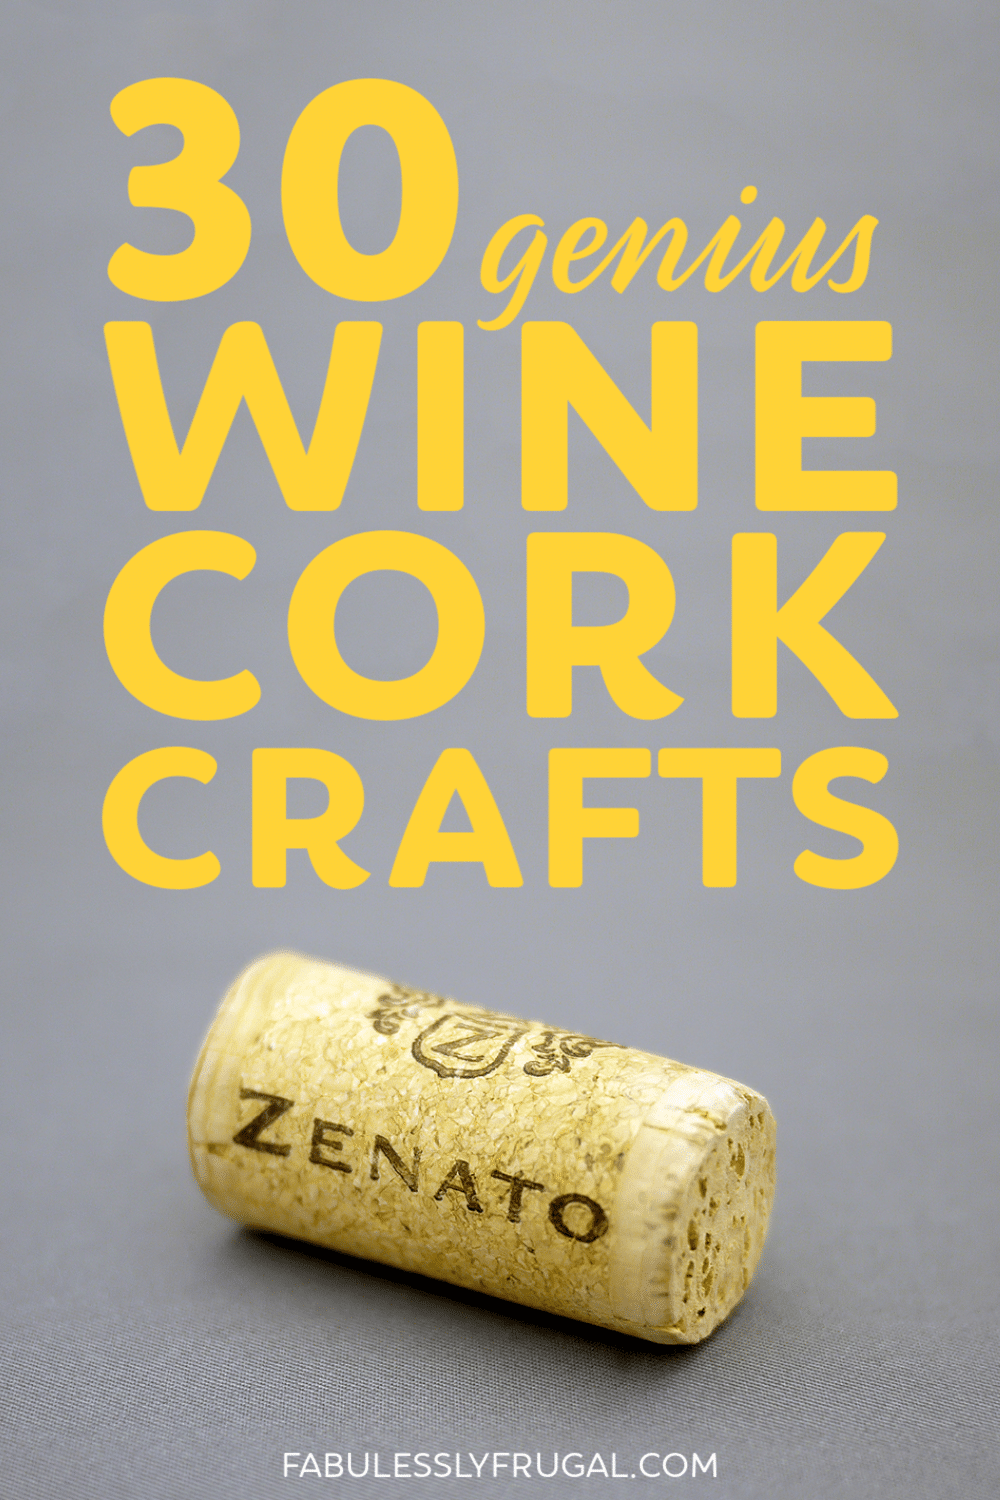 Genius wine cork crafts